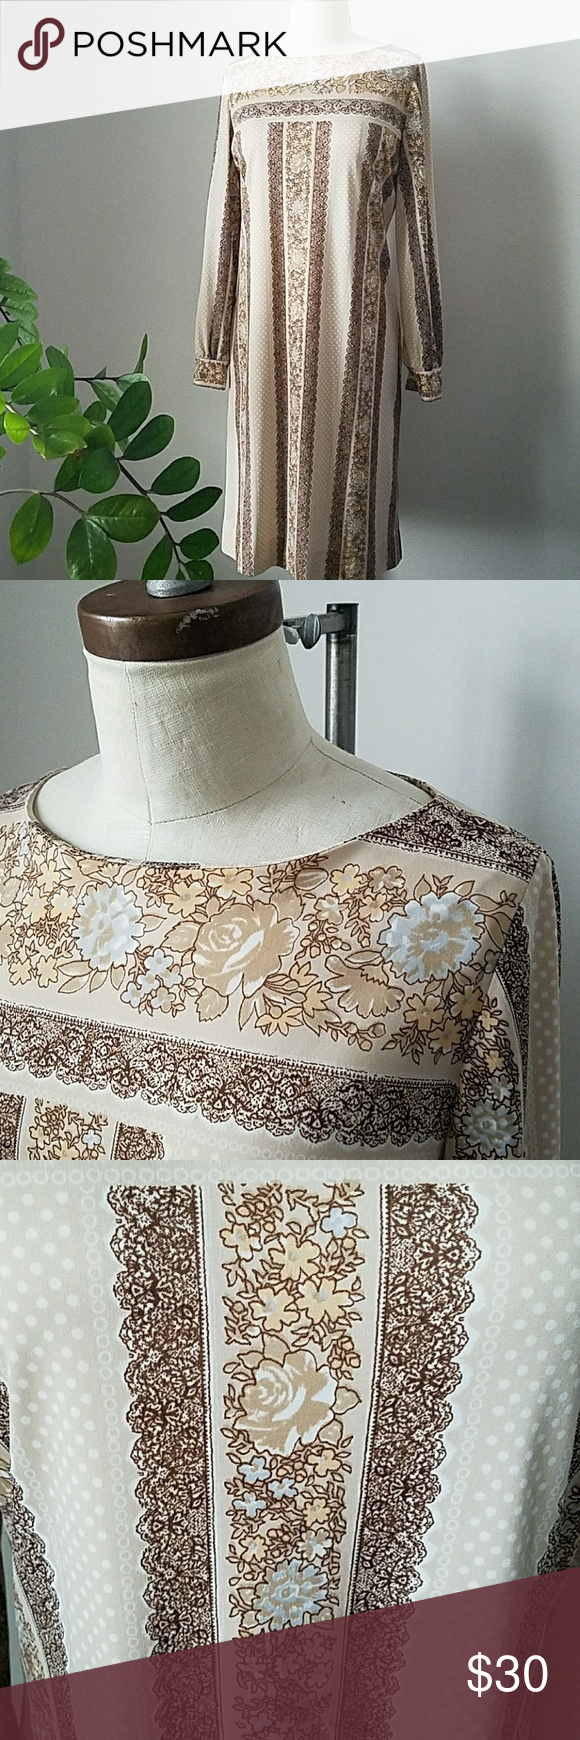 """Vintage 70s Wilroy Traveller Painted Printed Dress Known for that touch of hand feel in their prints, this dress has a floral motif with polka dots in browns  and baby blue. Float silhouette with boat neckline and barrel sleeves with button. Has an opening for a belt but was purchased without. Not lined. Sheerness shown in last pic. Would probably fit a XS/S but recommend you cross reference with a similar garment to ensure fit. Measurements are: Shoulder 14.5"""" Sleeve 34"""" Chest 19"""" Waist…"""